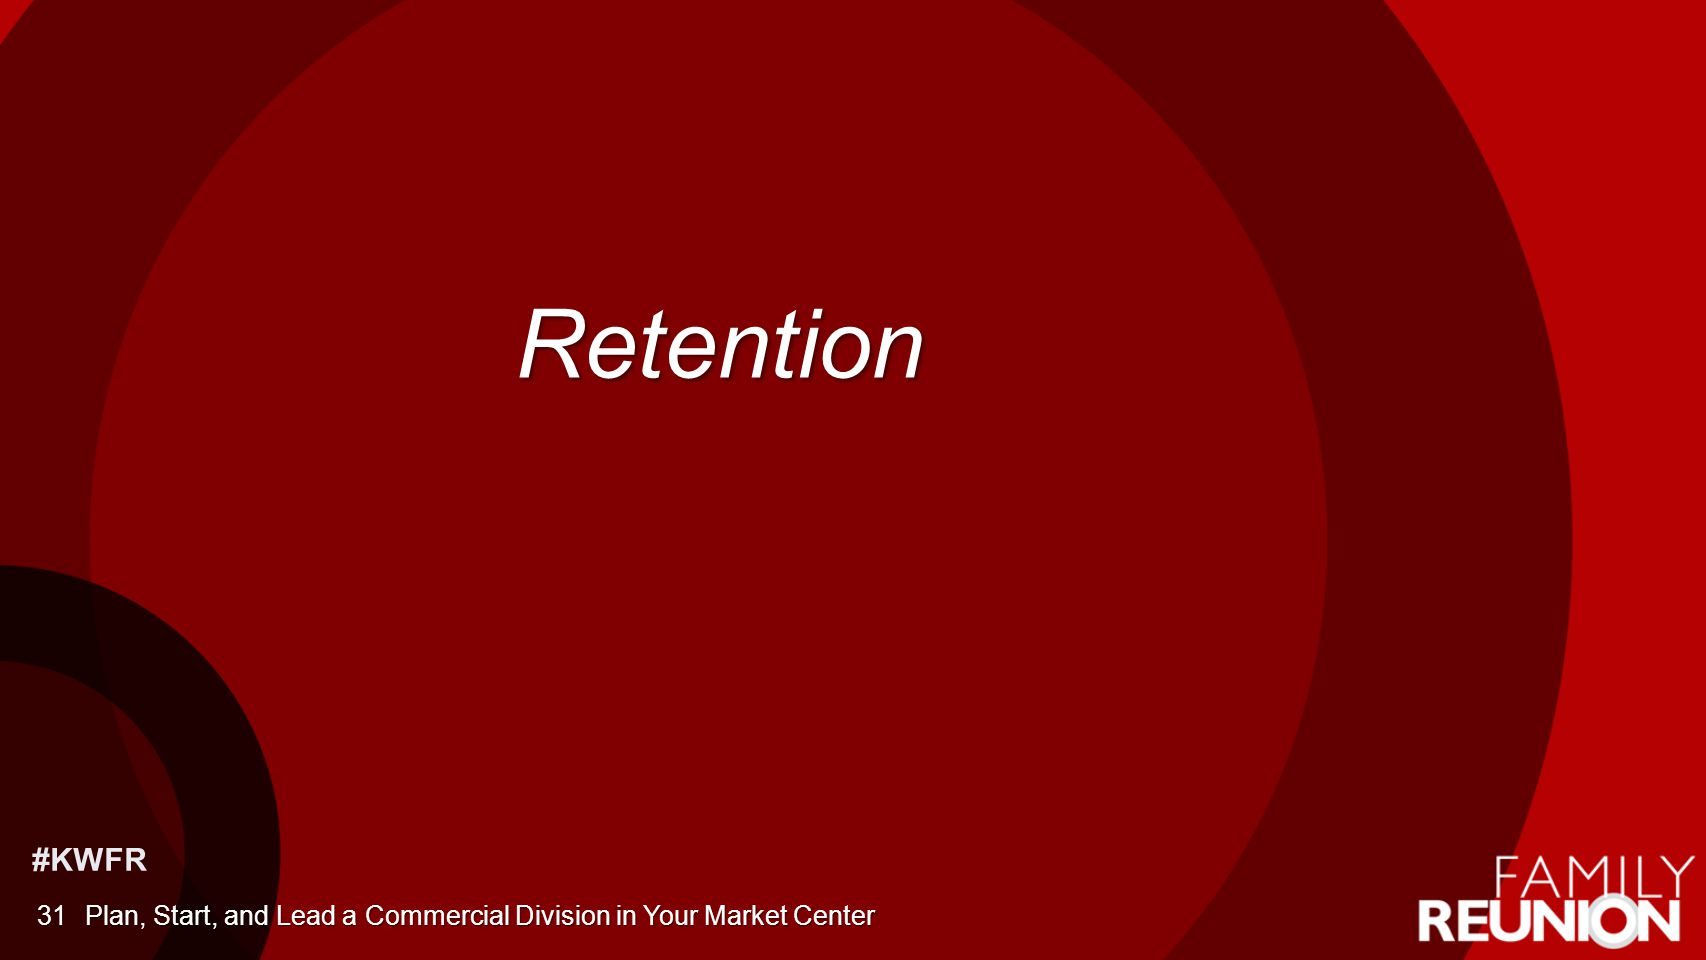 #KWFR Retention Plan, Start, and Lead a Commercial Division in Your Market Center31